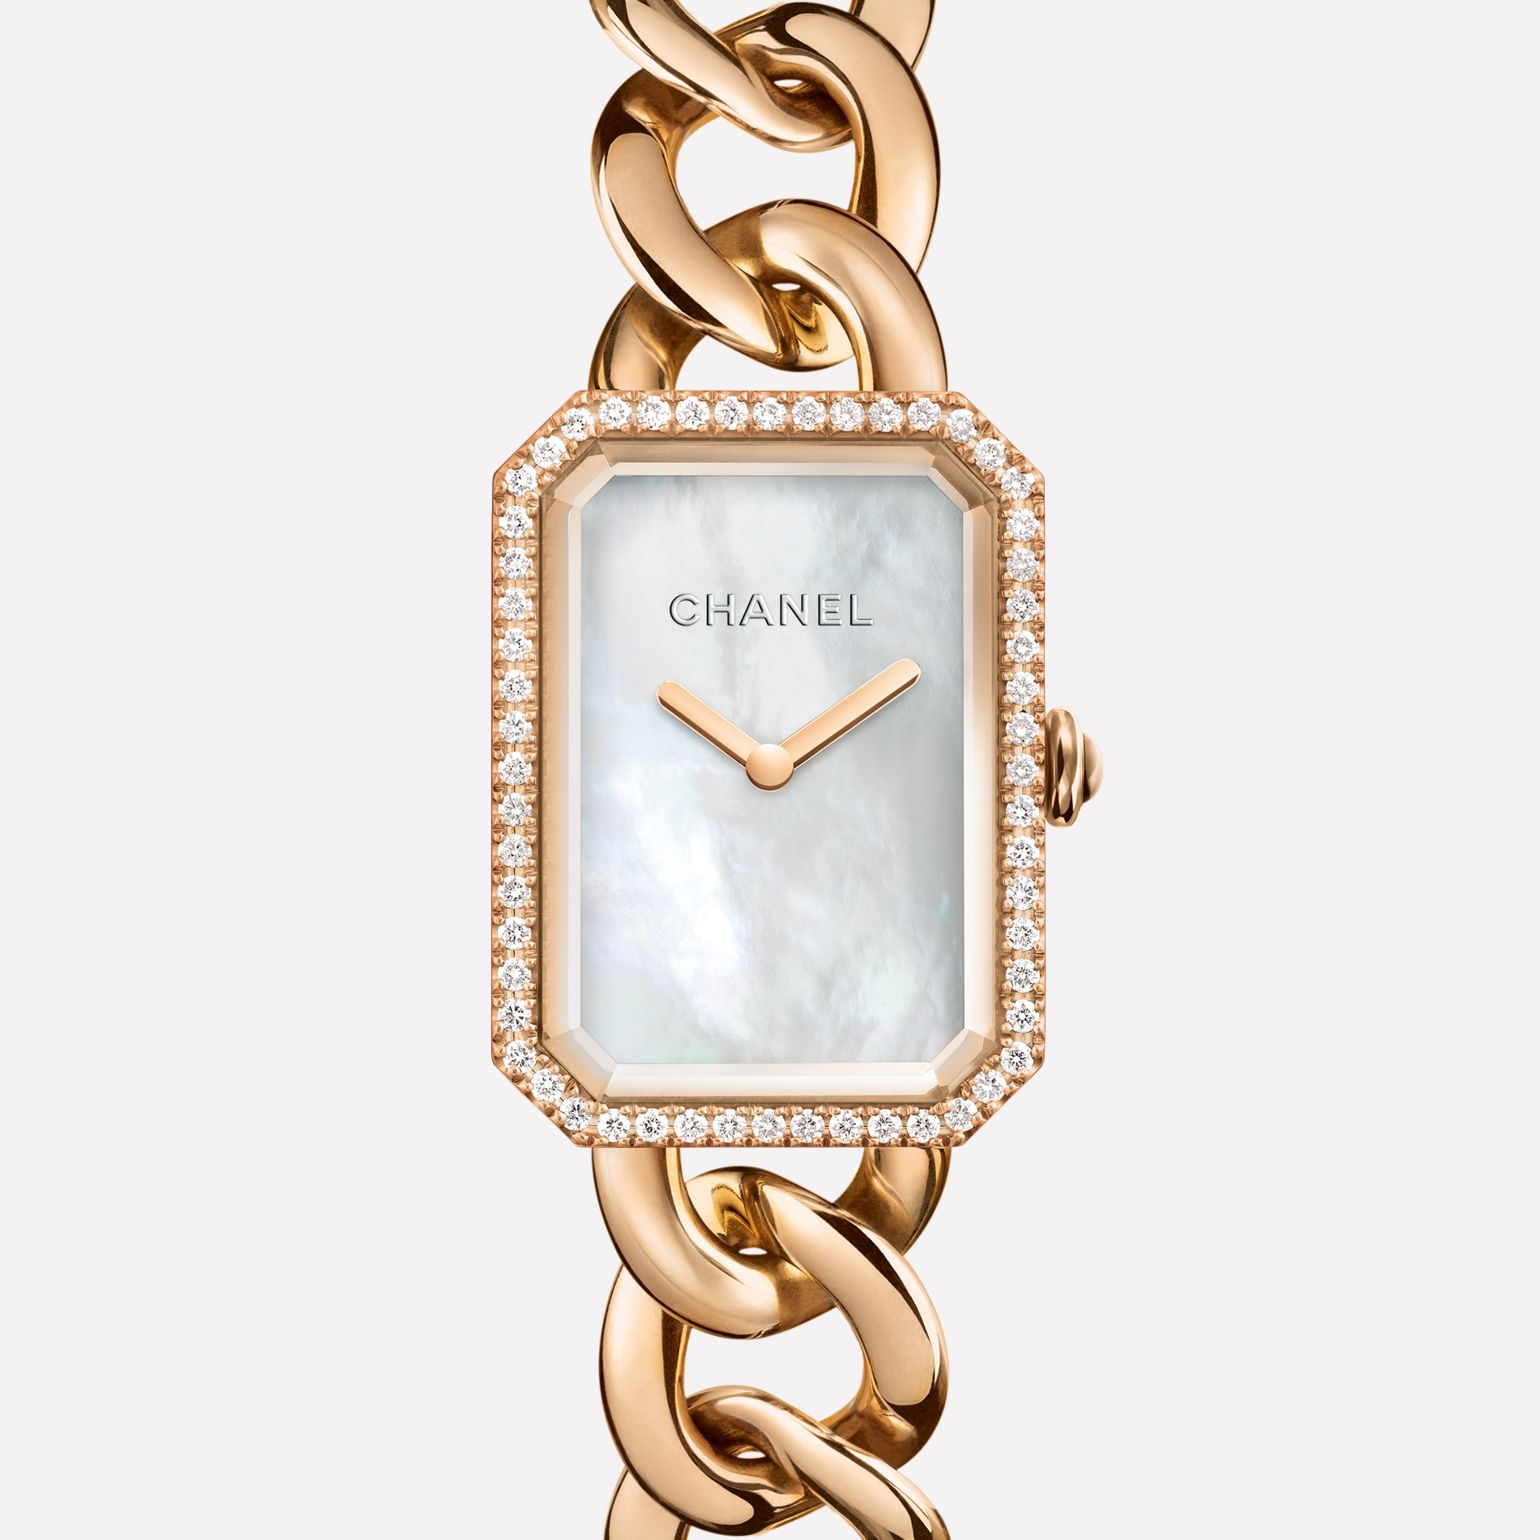 Première Chaîne Watch Large version, BEIGE GOLD and diamonds, white mother-of-pearl dial